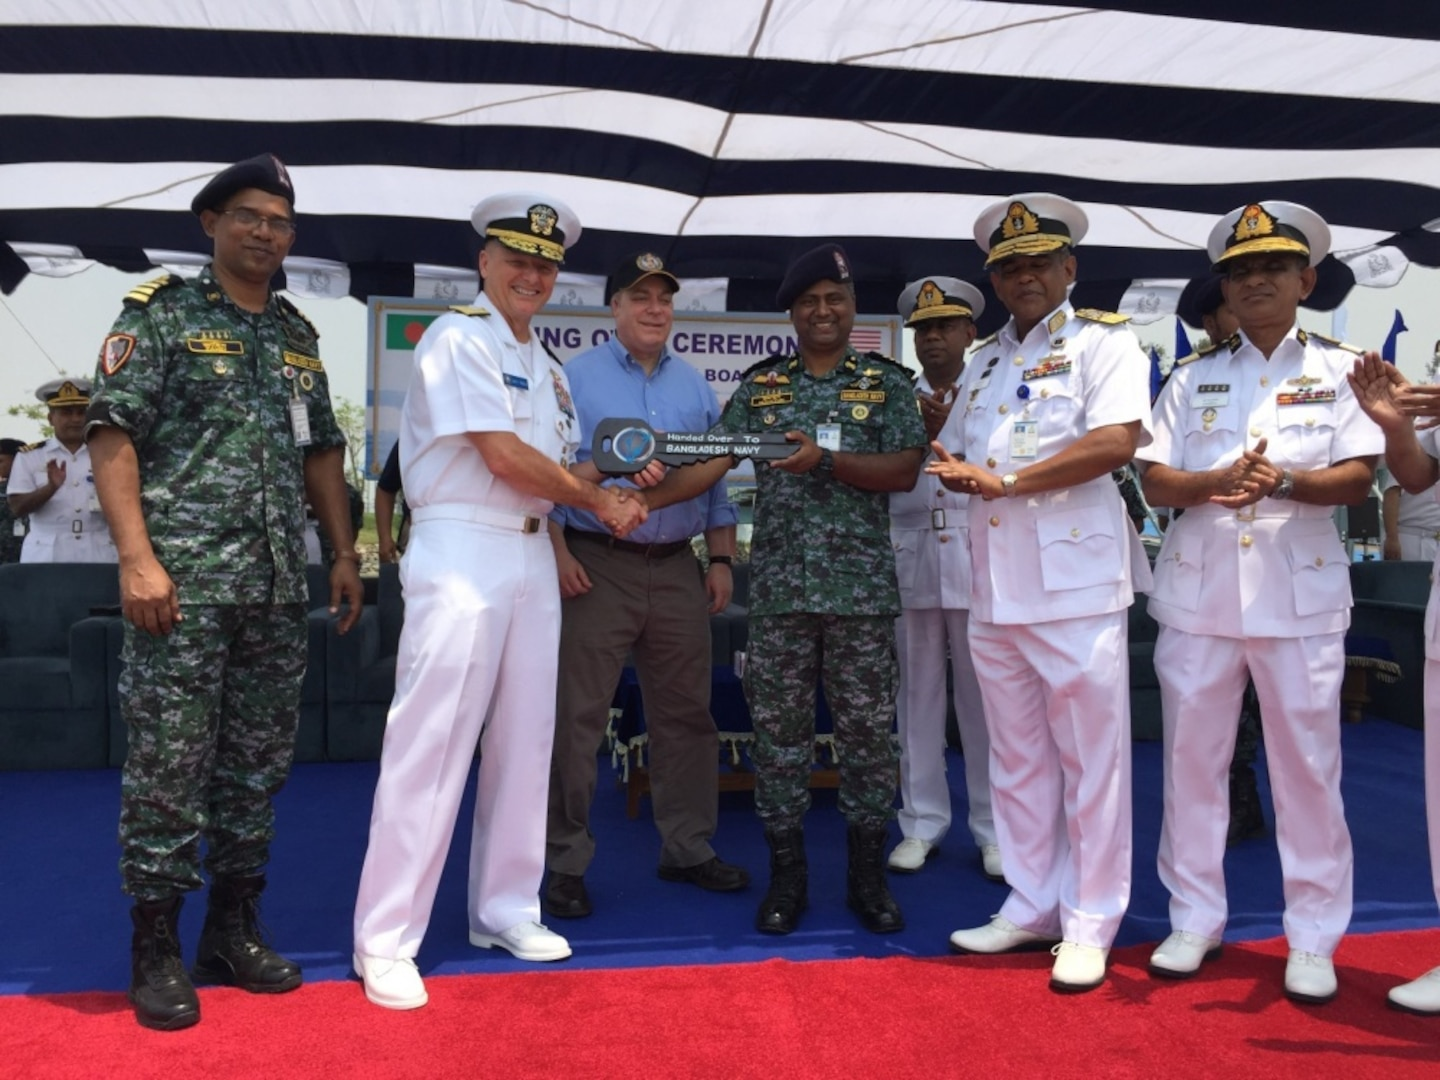 190425-N-ZZ999-001 CHITTAGONG, Bangladesh (April 25, 2019) Rear Admiral Joey Tynch, commander, Logistics Group Western Pacific, left, presents a symbolic key to Bangladesh Navy senior delagates during a ceremony at the Special Warfare Diving and Salvage (SWADS) Headquarters in Chittagong. Five metal patrol boats were handed over to the Bangladesh Navy and a ceremony was held commemorating the exchange of the crafts and celebrating the long-standing partnership between both nations. (Courtesy photo by Lt. Col. Matthew A. Kohler)